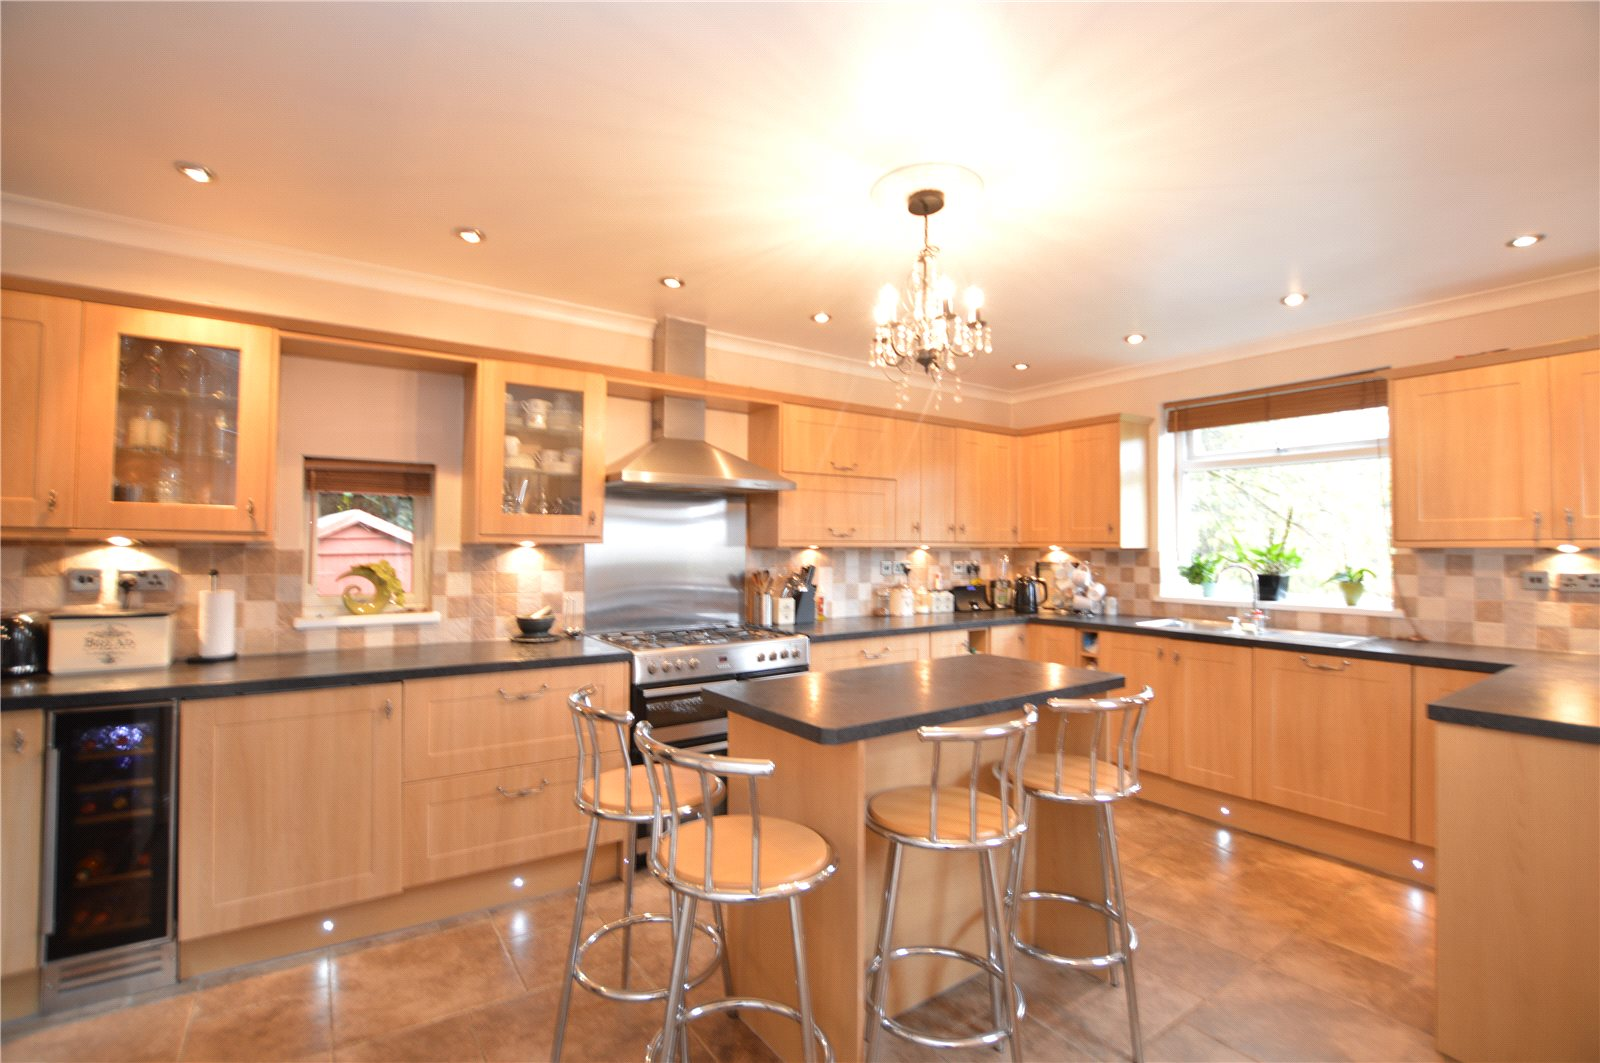 property for sale in Morley, modern fitted spacious kitchen with breakfast bar